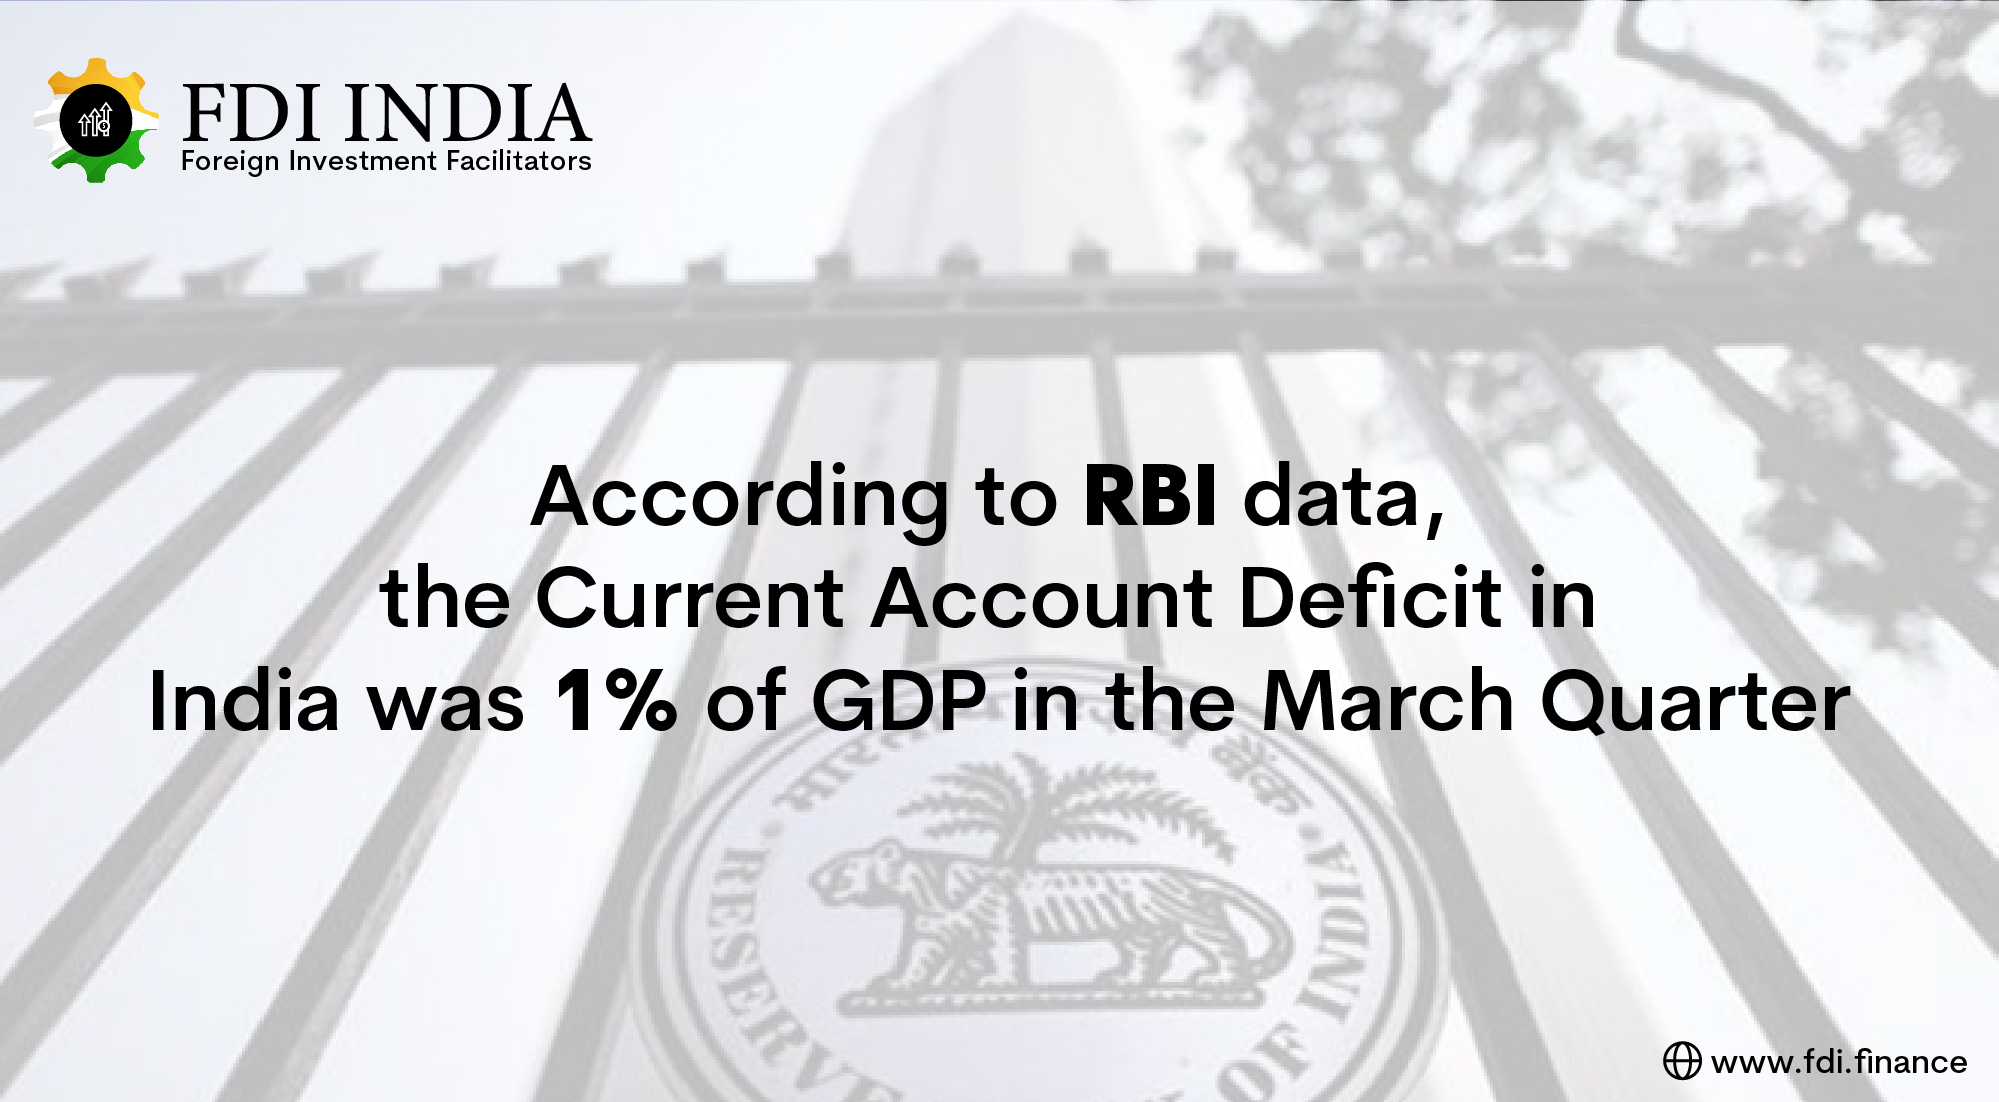 According to RBI data, the Current Account Deficit in India was 1% of GDP in the March Quarter